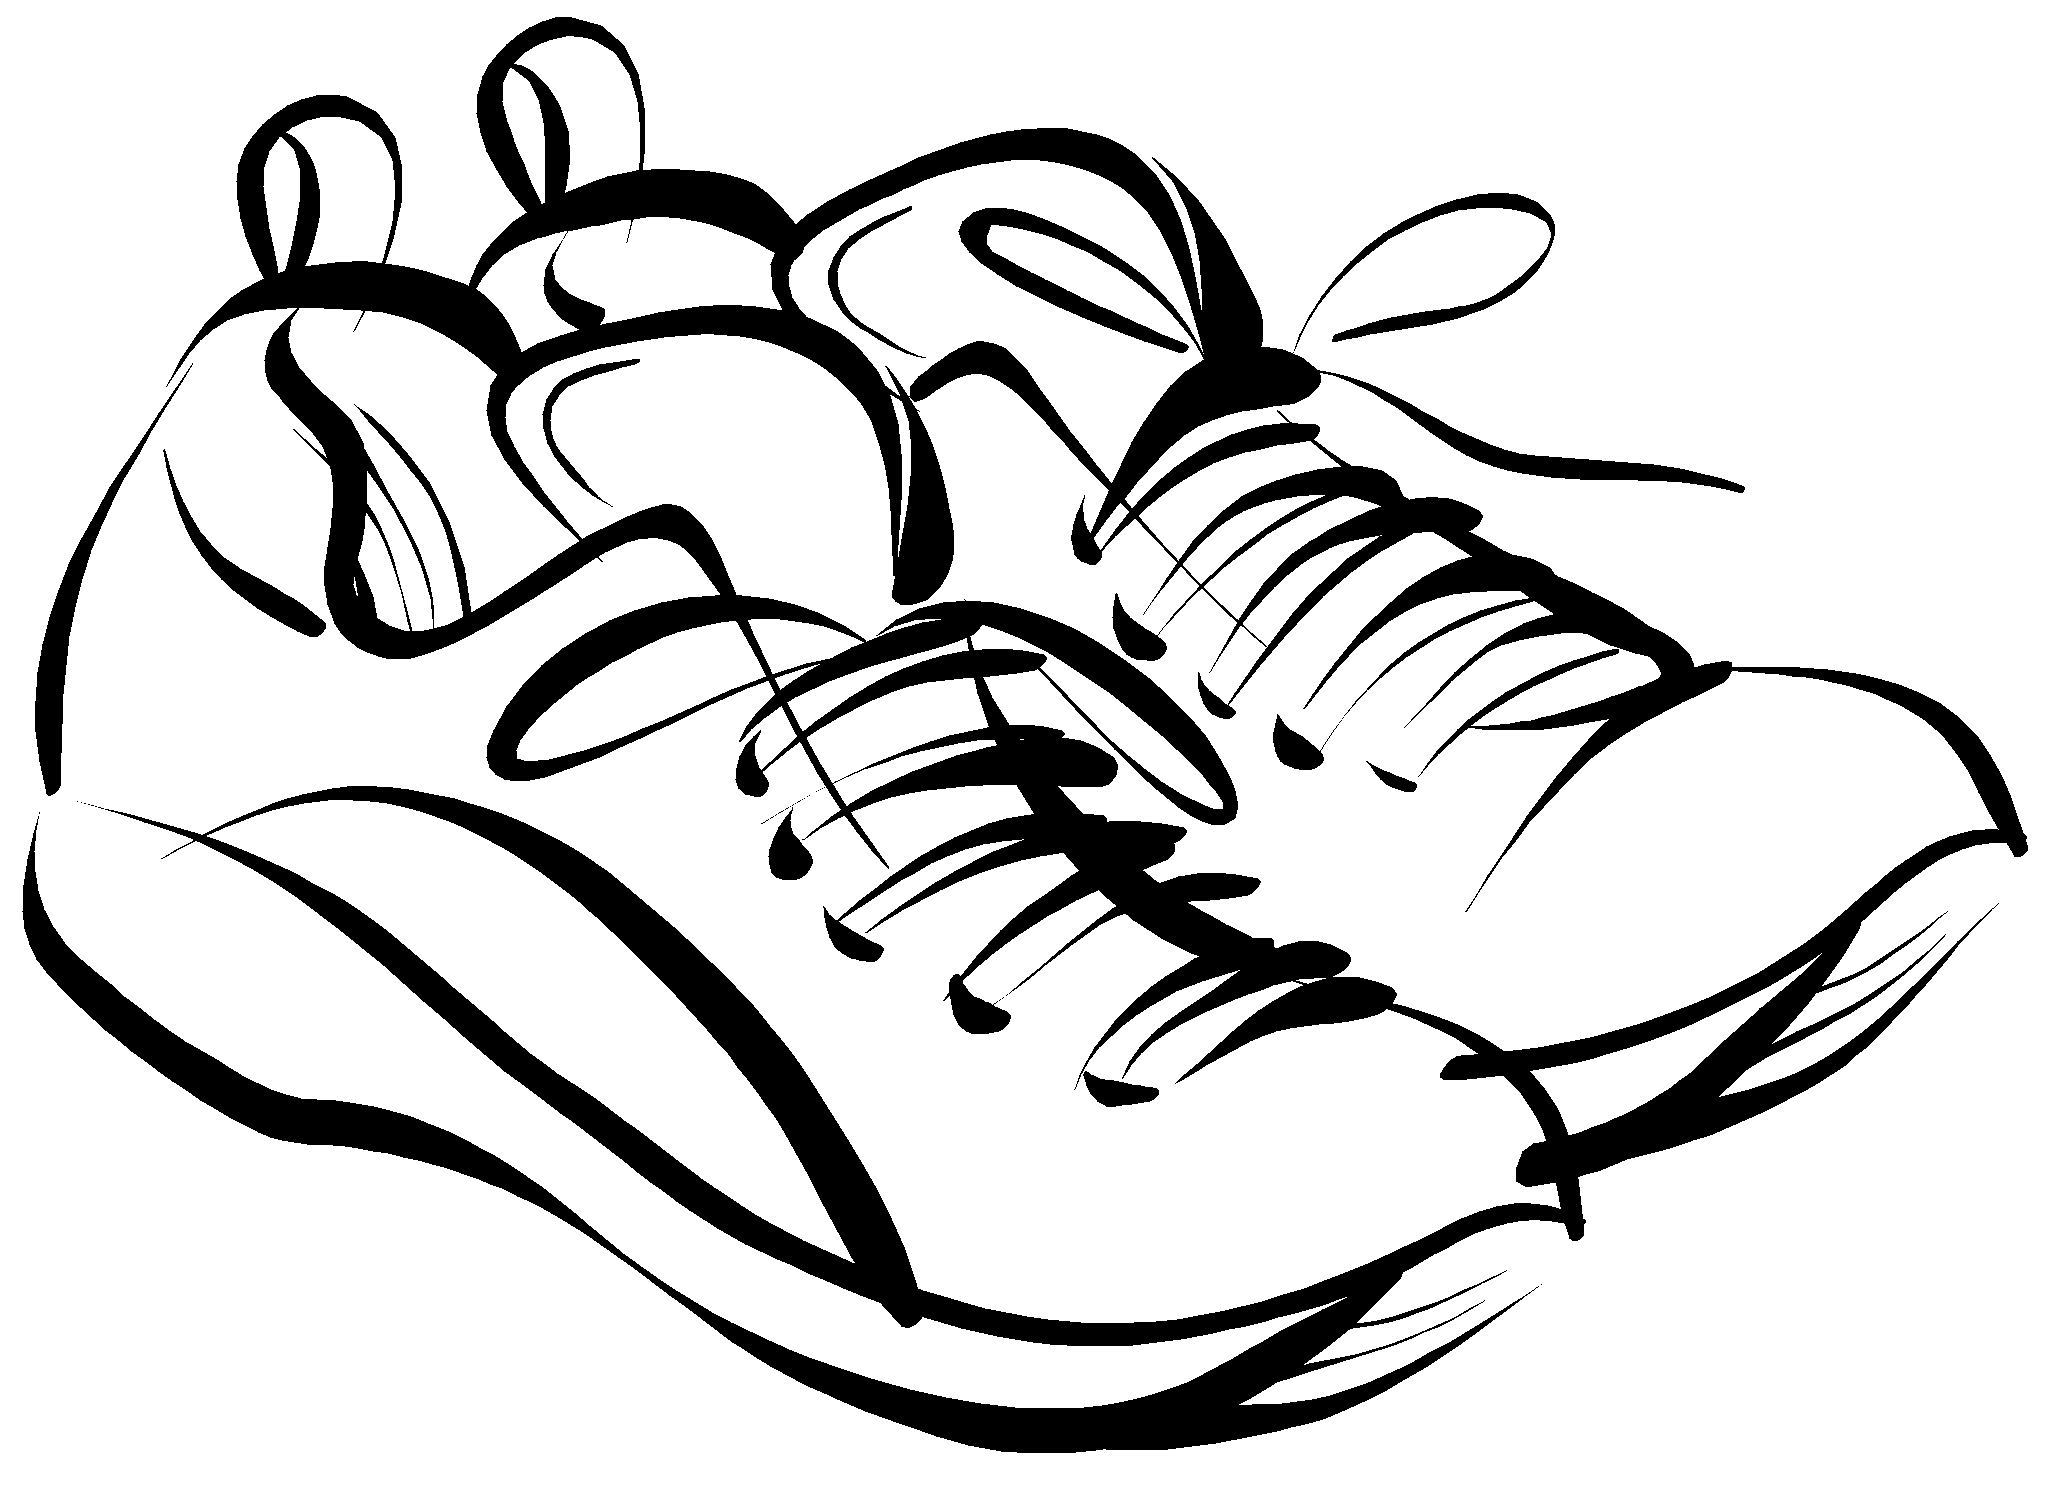 Running shoes drawing panda. Clipart rocket shoe